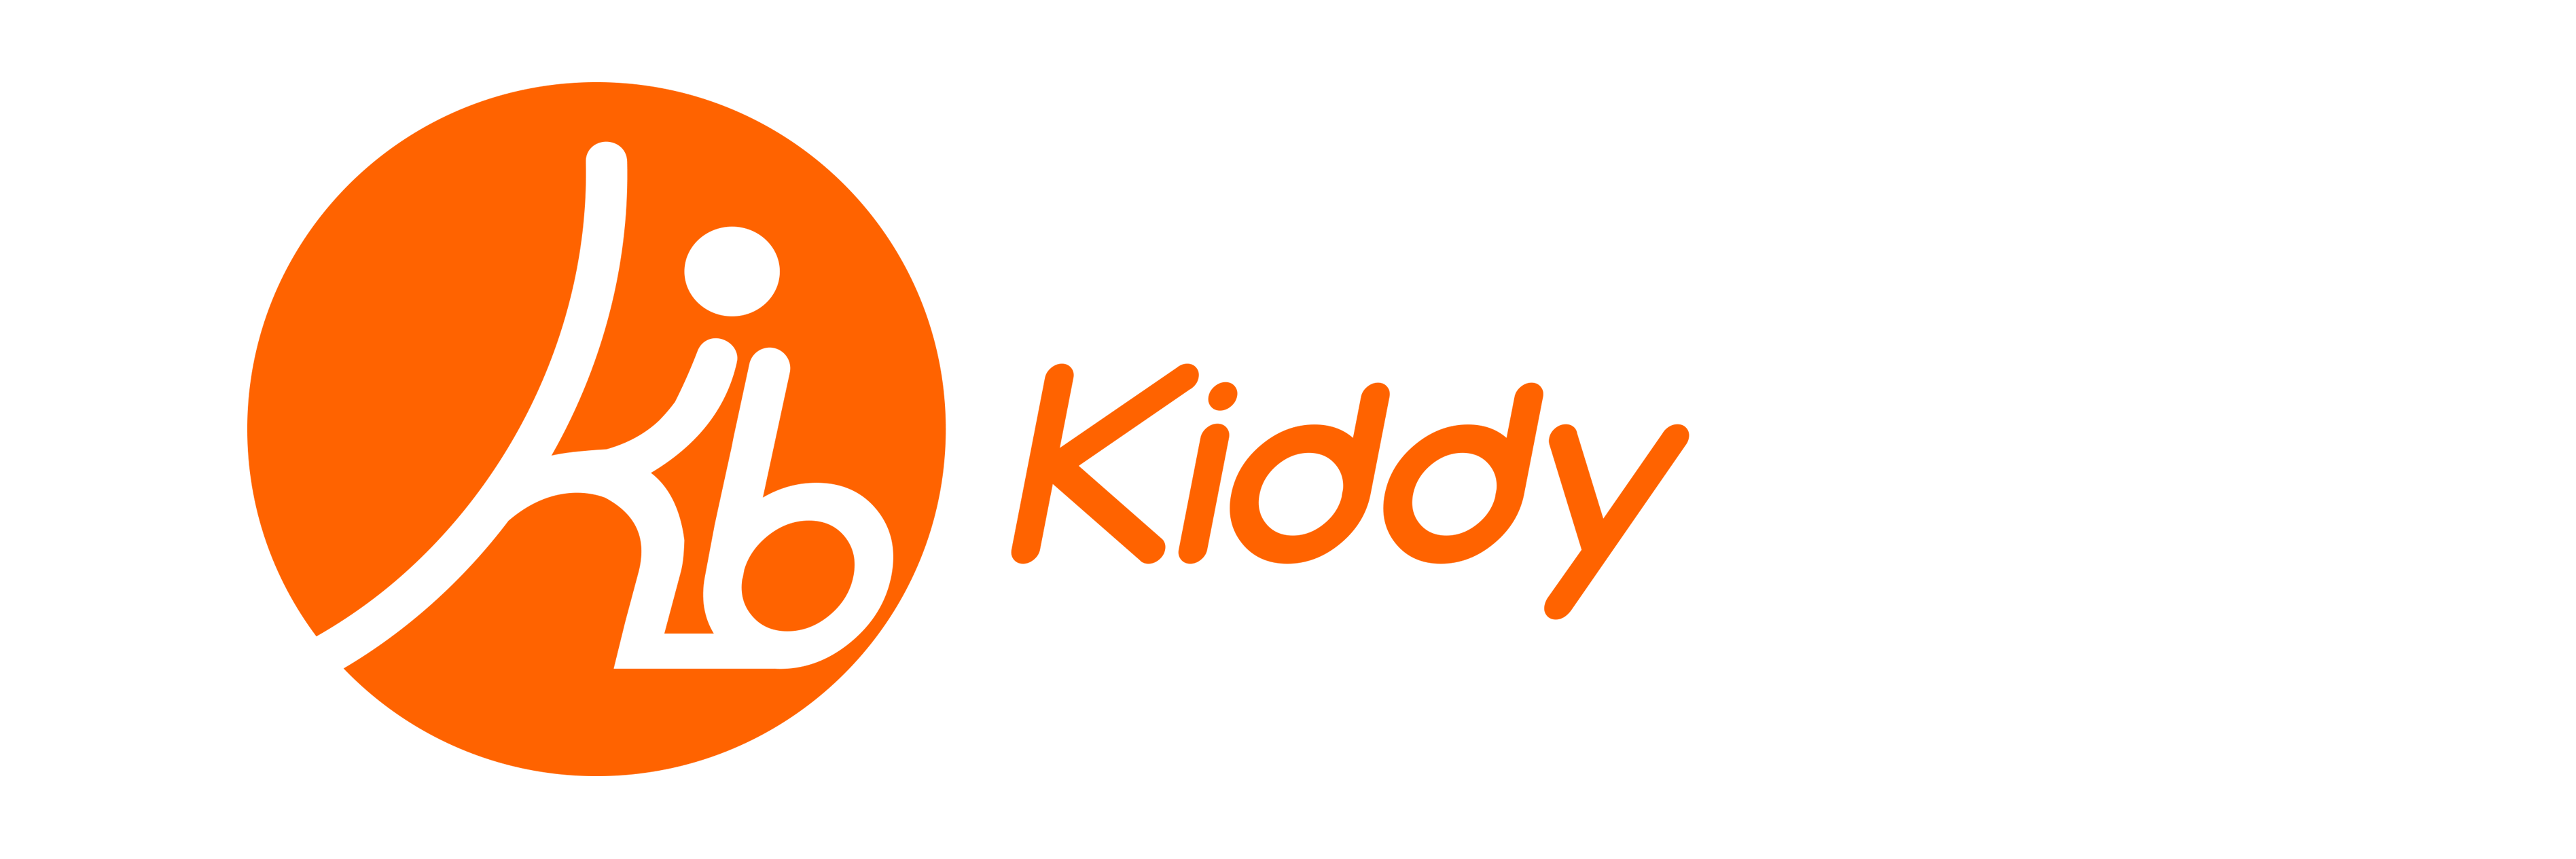 Kiddyboost